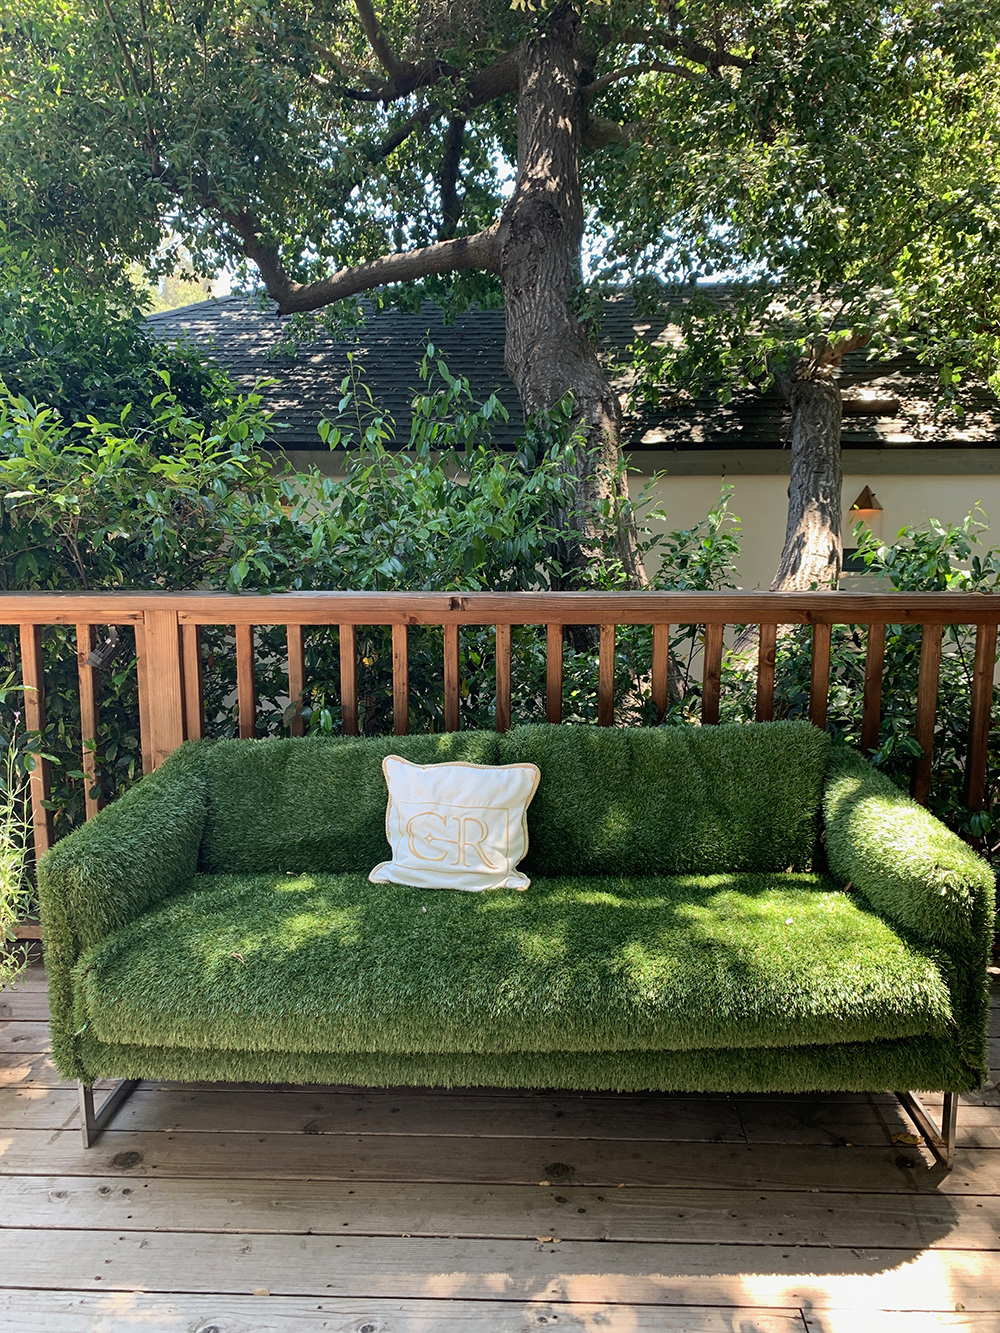 Calamigos Guest Ranch & Beach Club features lots of cute details throughout, like this faux-grass couch.